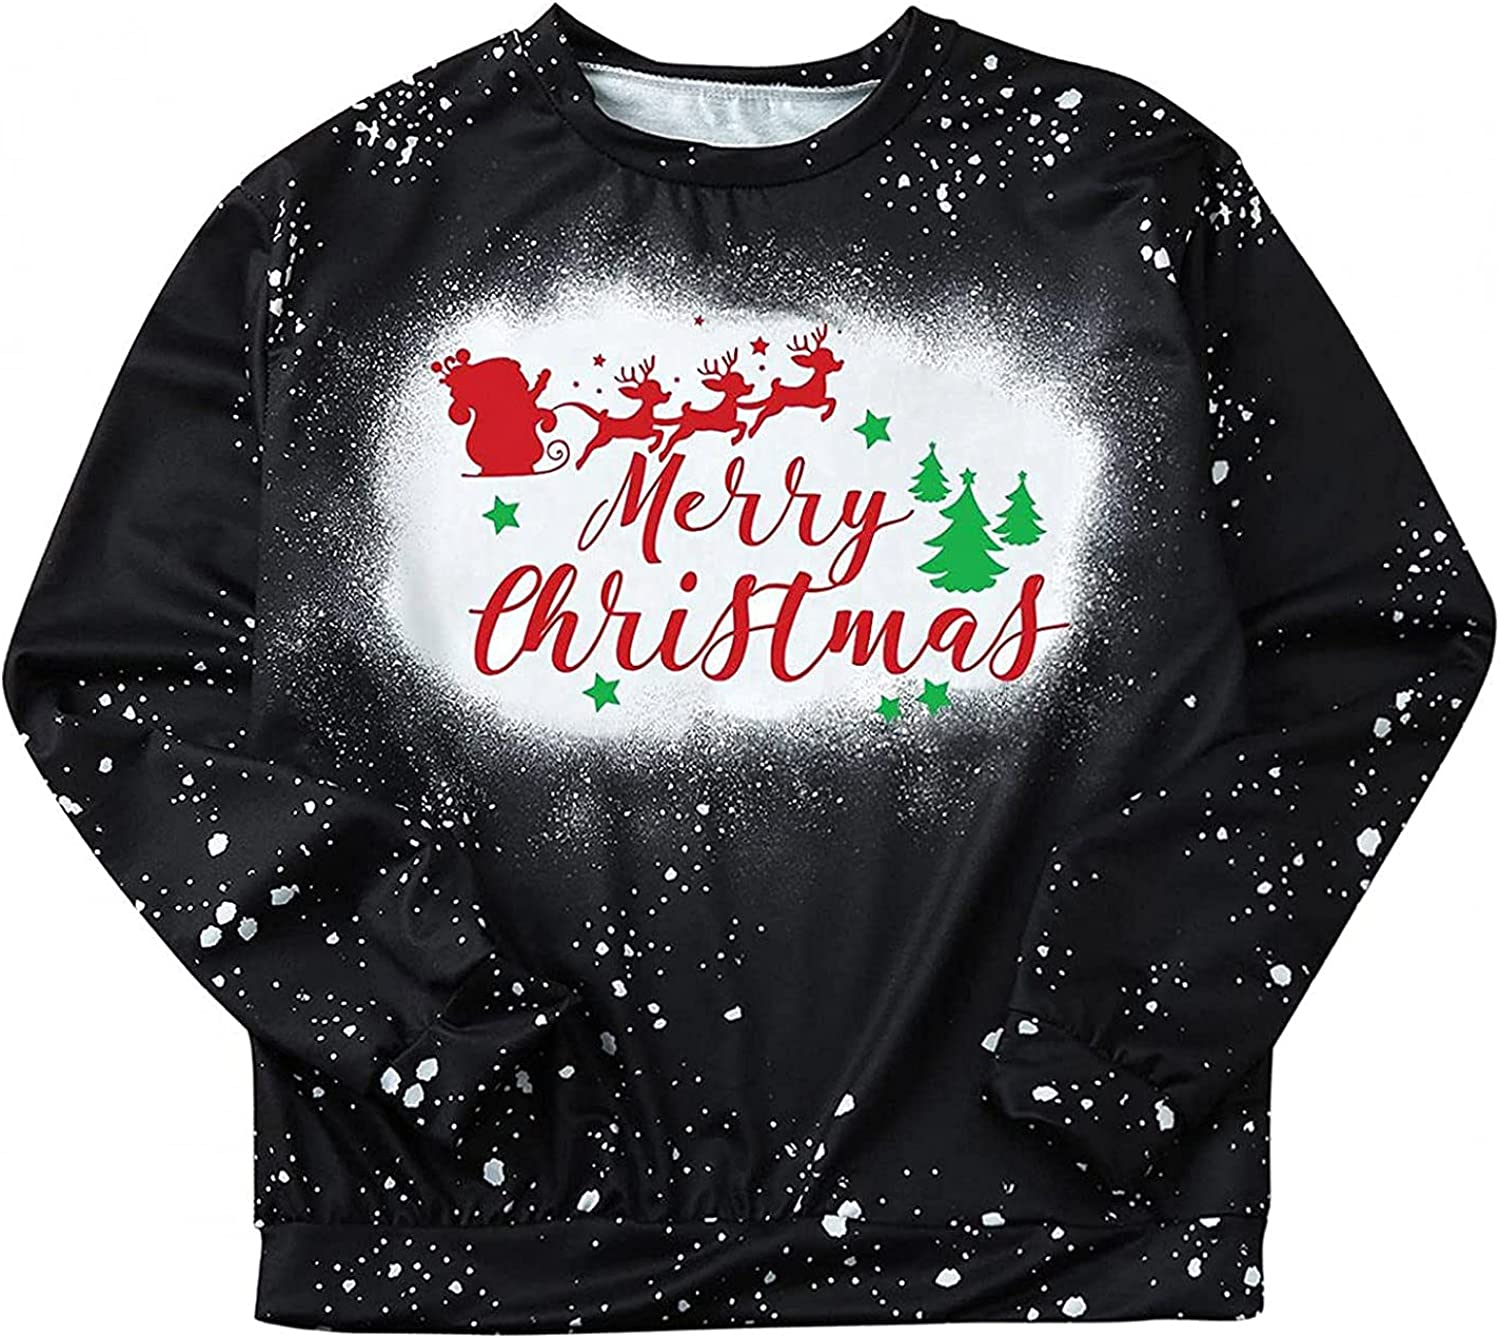 Tie Special price Dye Shirts Now on sale Womens Fall Tops Graphic Tree Christmas Tees Fash